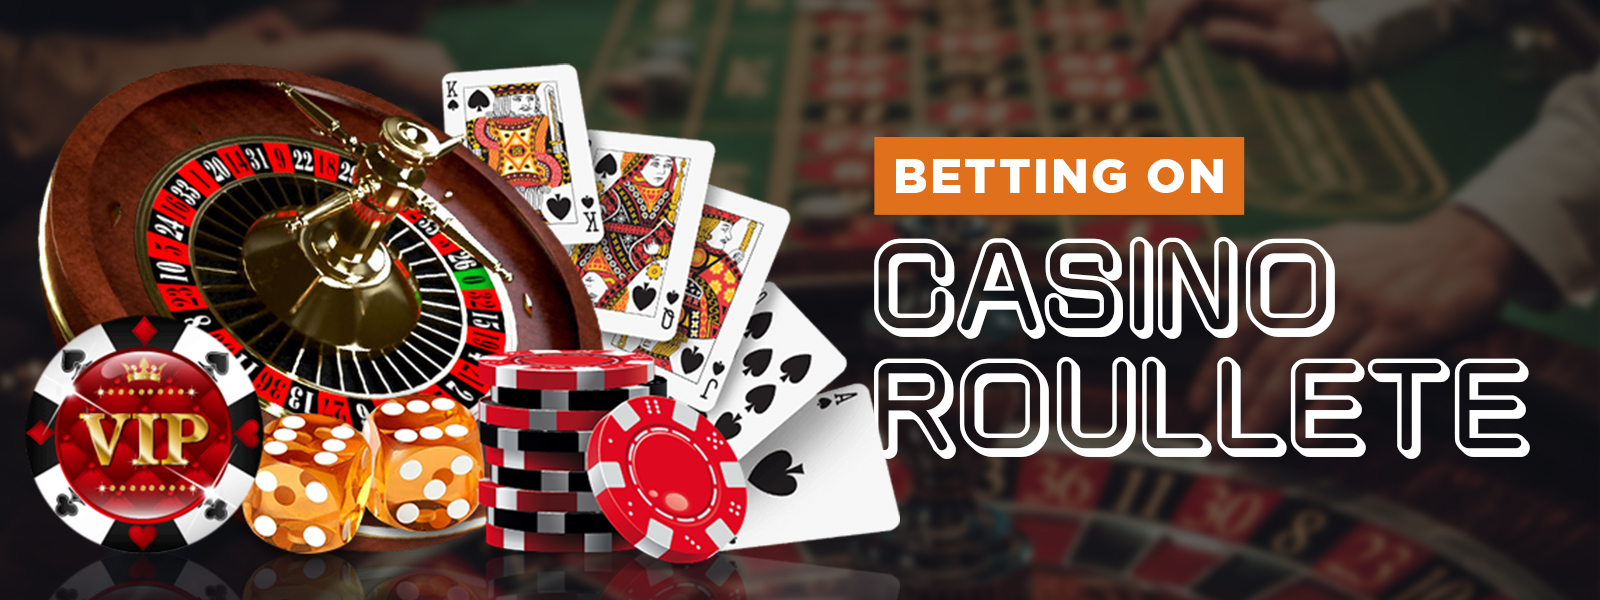 Online Casino Roulette Betting Guide